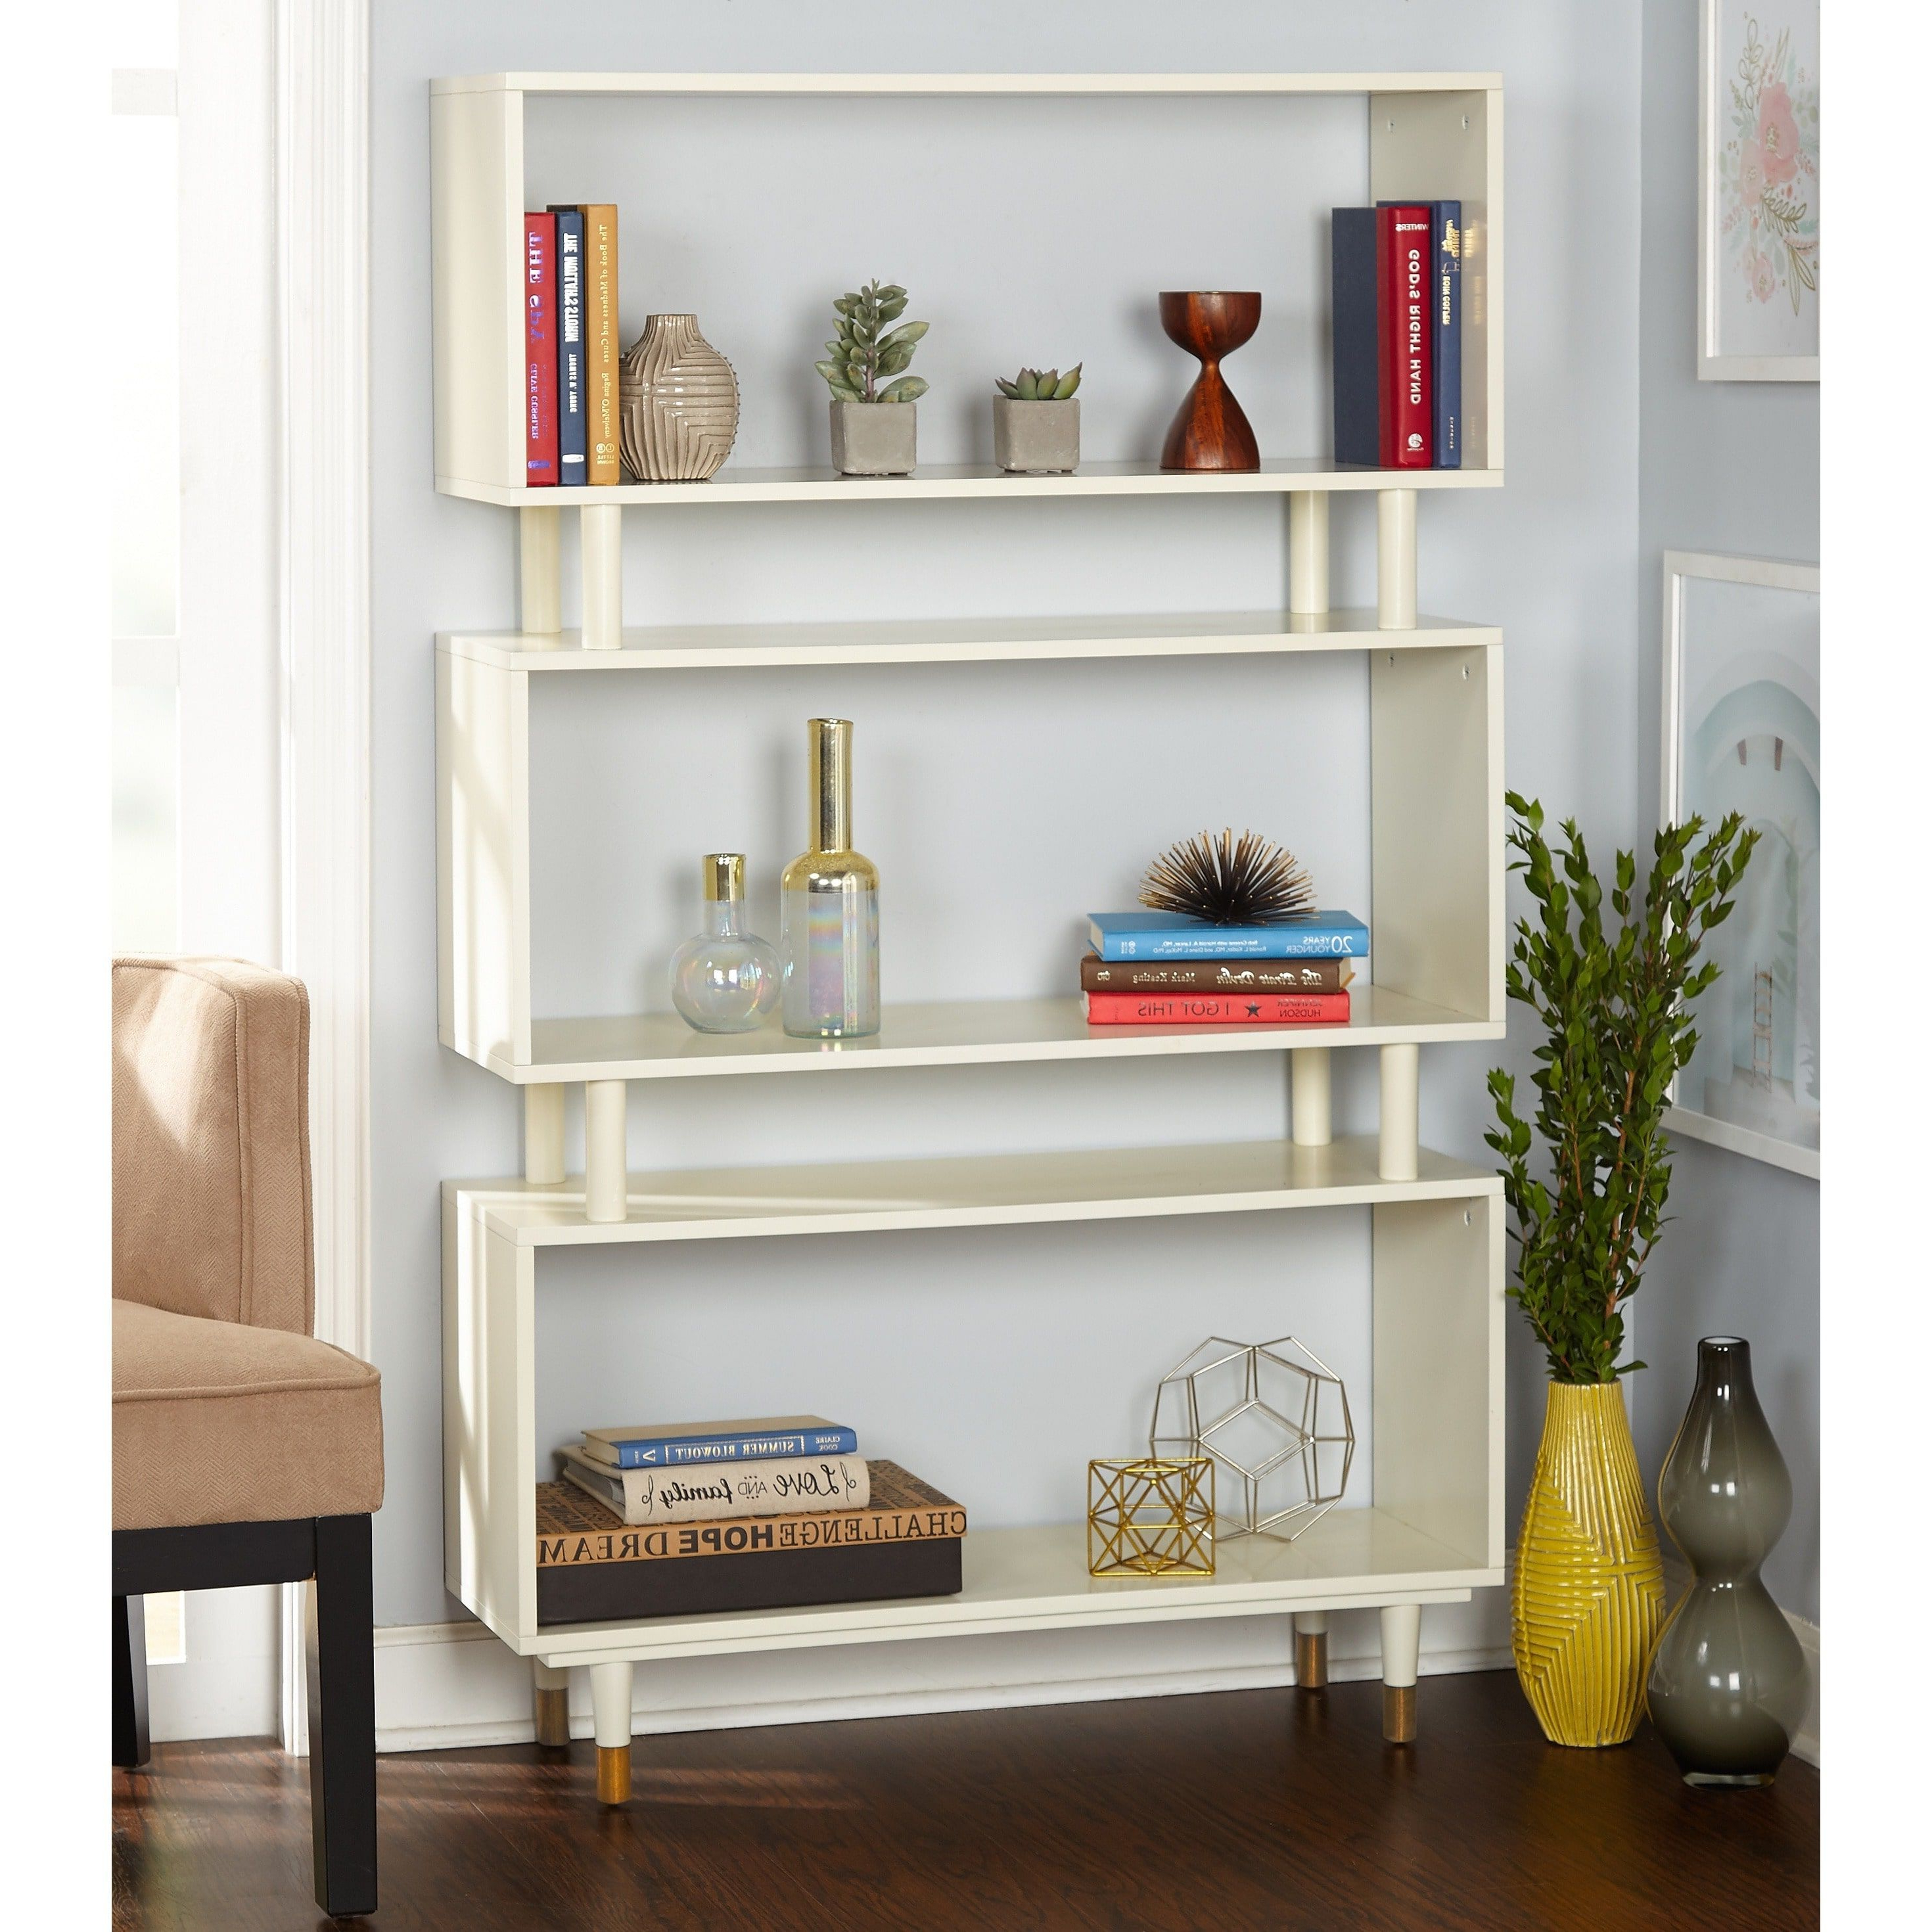 Simple Living Margo Mid Century 3 Shelf Bookshelf – 59.5H X With Regard To Most Current Morrell Standard Bookcases (Gallery 18 of 20)